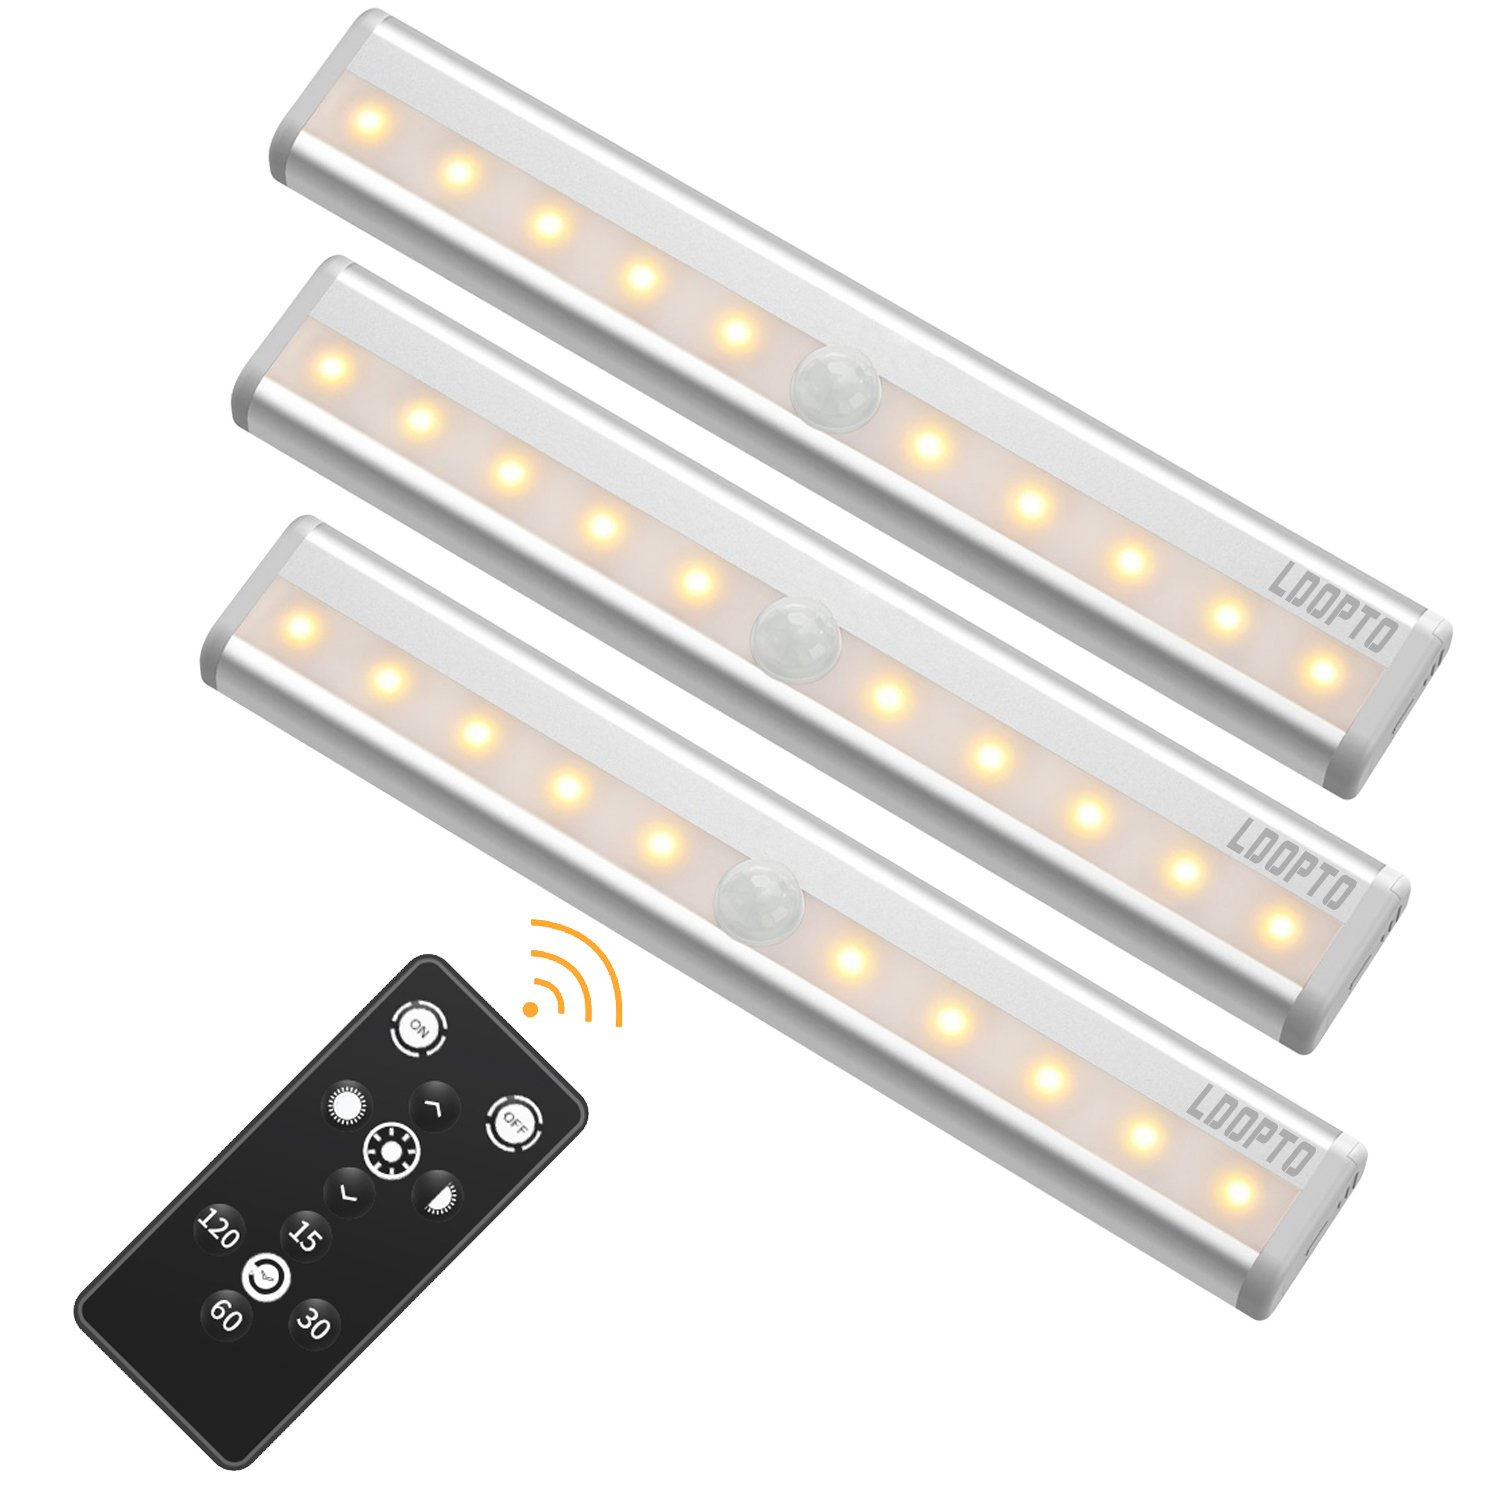 Wireless Remote Control Led Under Cabinet Lighting [3 Packs], LDOPTO 10 LED Cupboard Light Bar, Closet Lights with Stick-on Magnetic Strip/Brightness Adjustment/Time Control, Silver